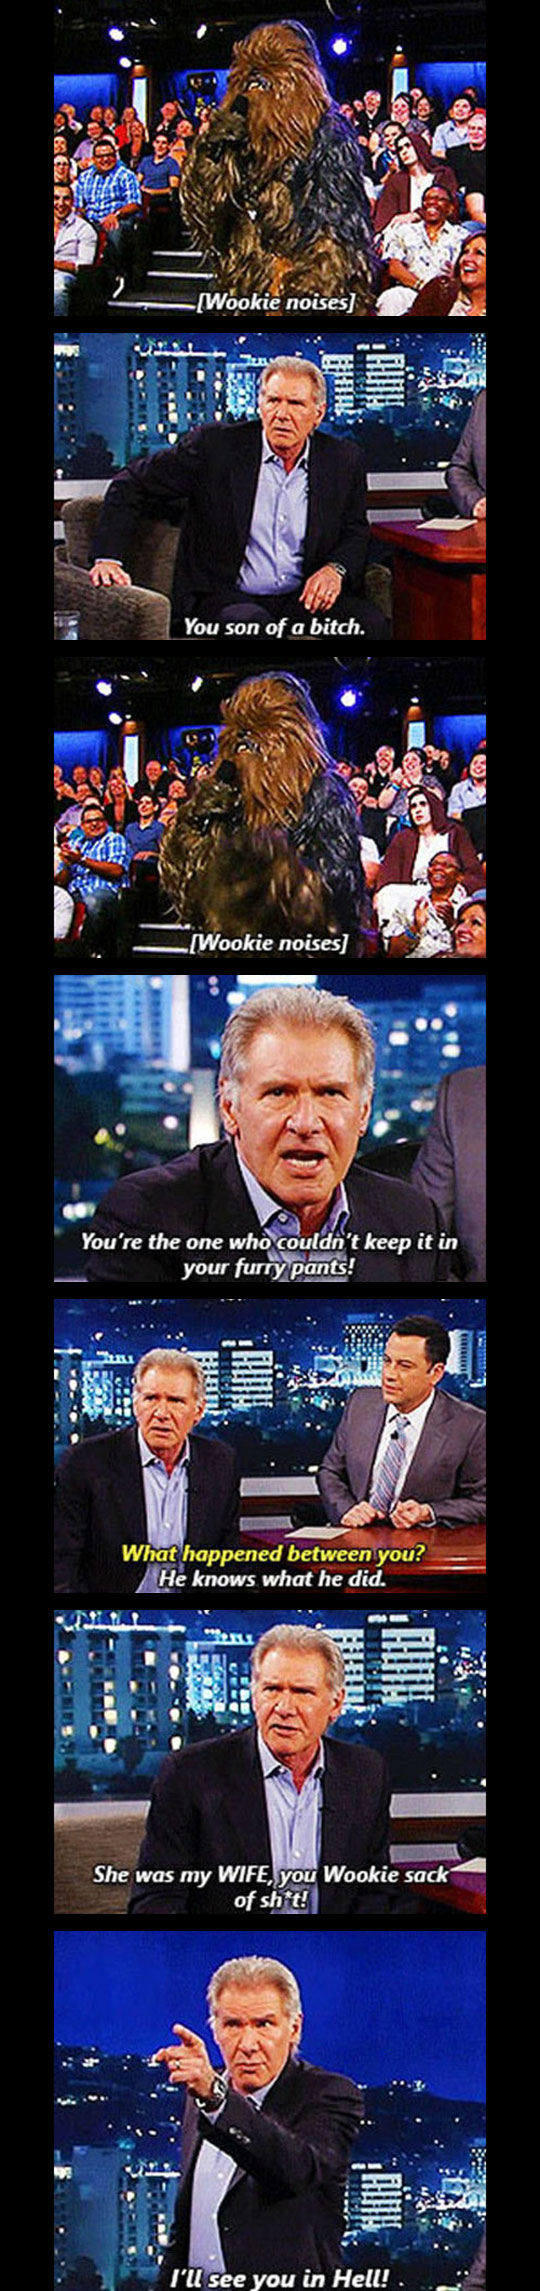 funny-Han-Solo-Harrison-Ford-interview-angry